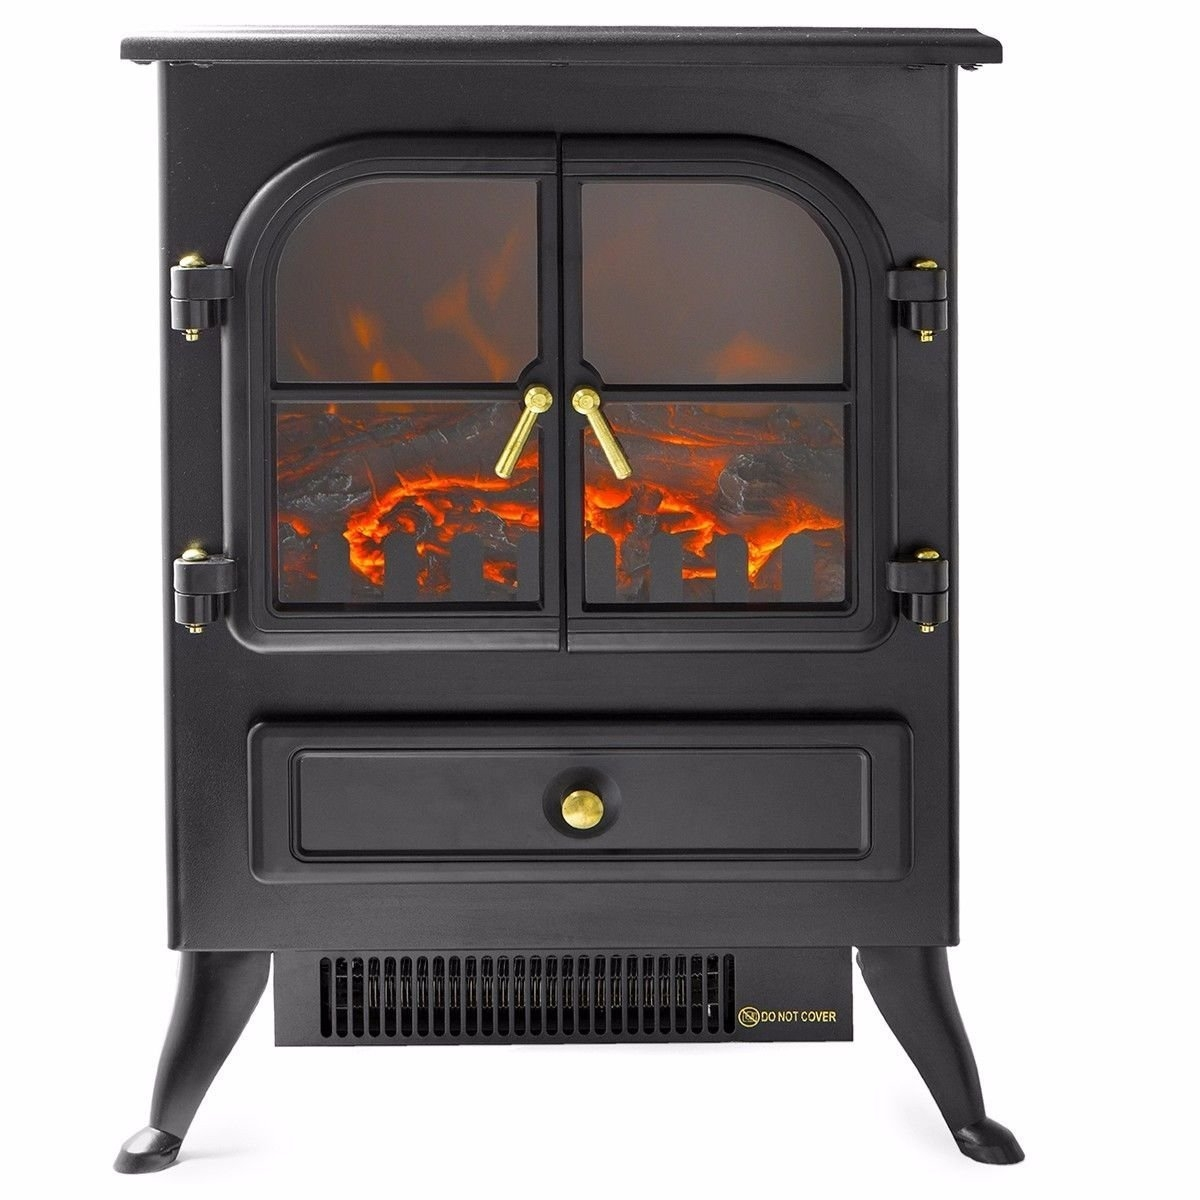 New MTN-G Free Standing Electric 1500W Fireplace Heater Fire Stove Flame Wood